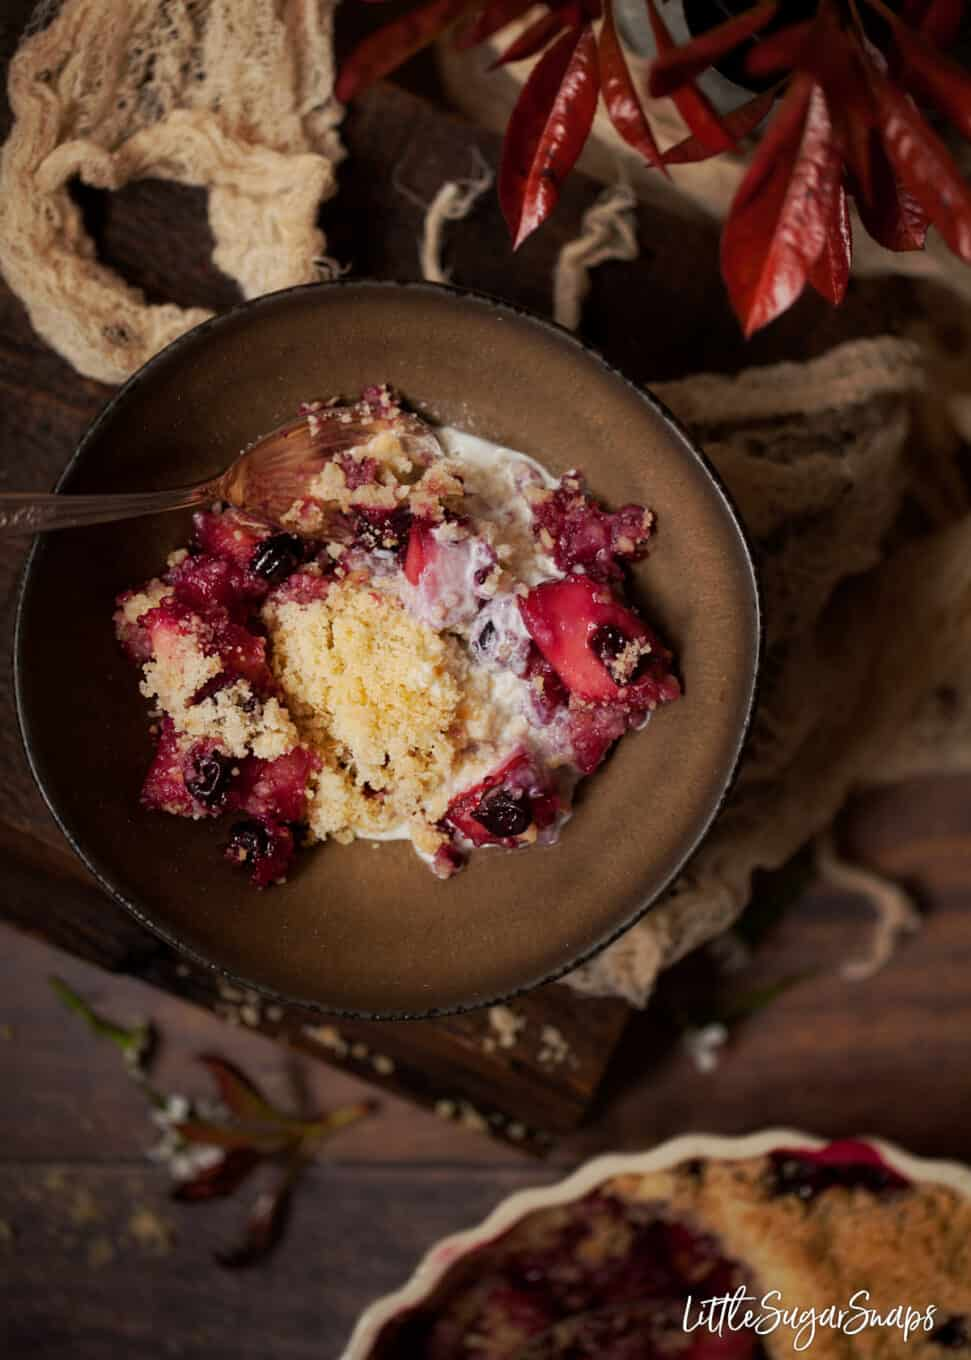 A bowl of blackcurrant crumble with single cream poured over it. Rustic setting